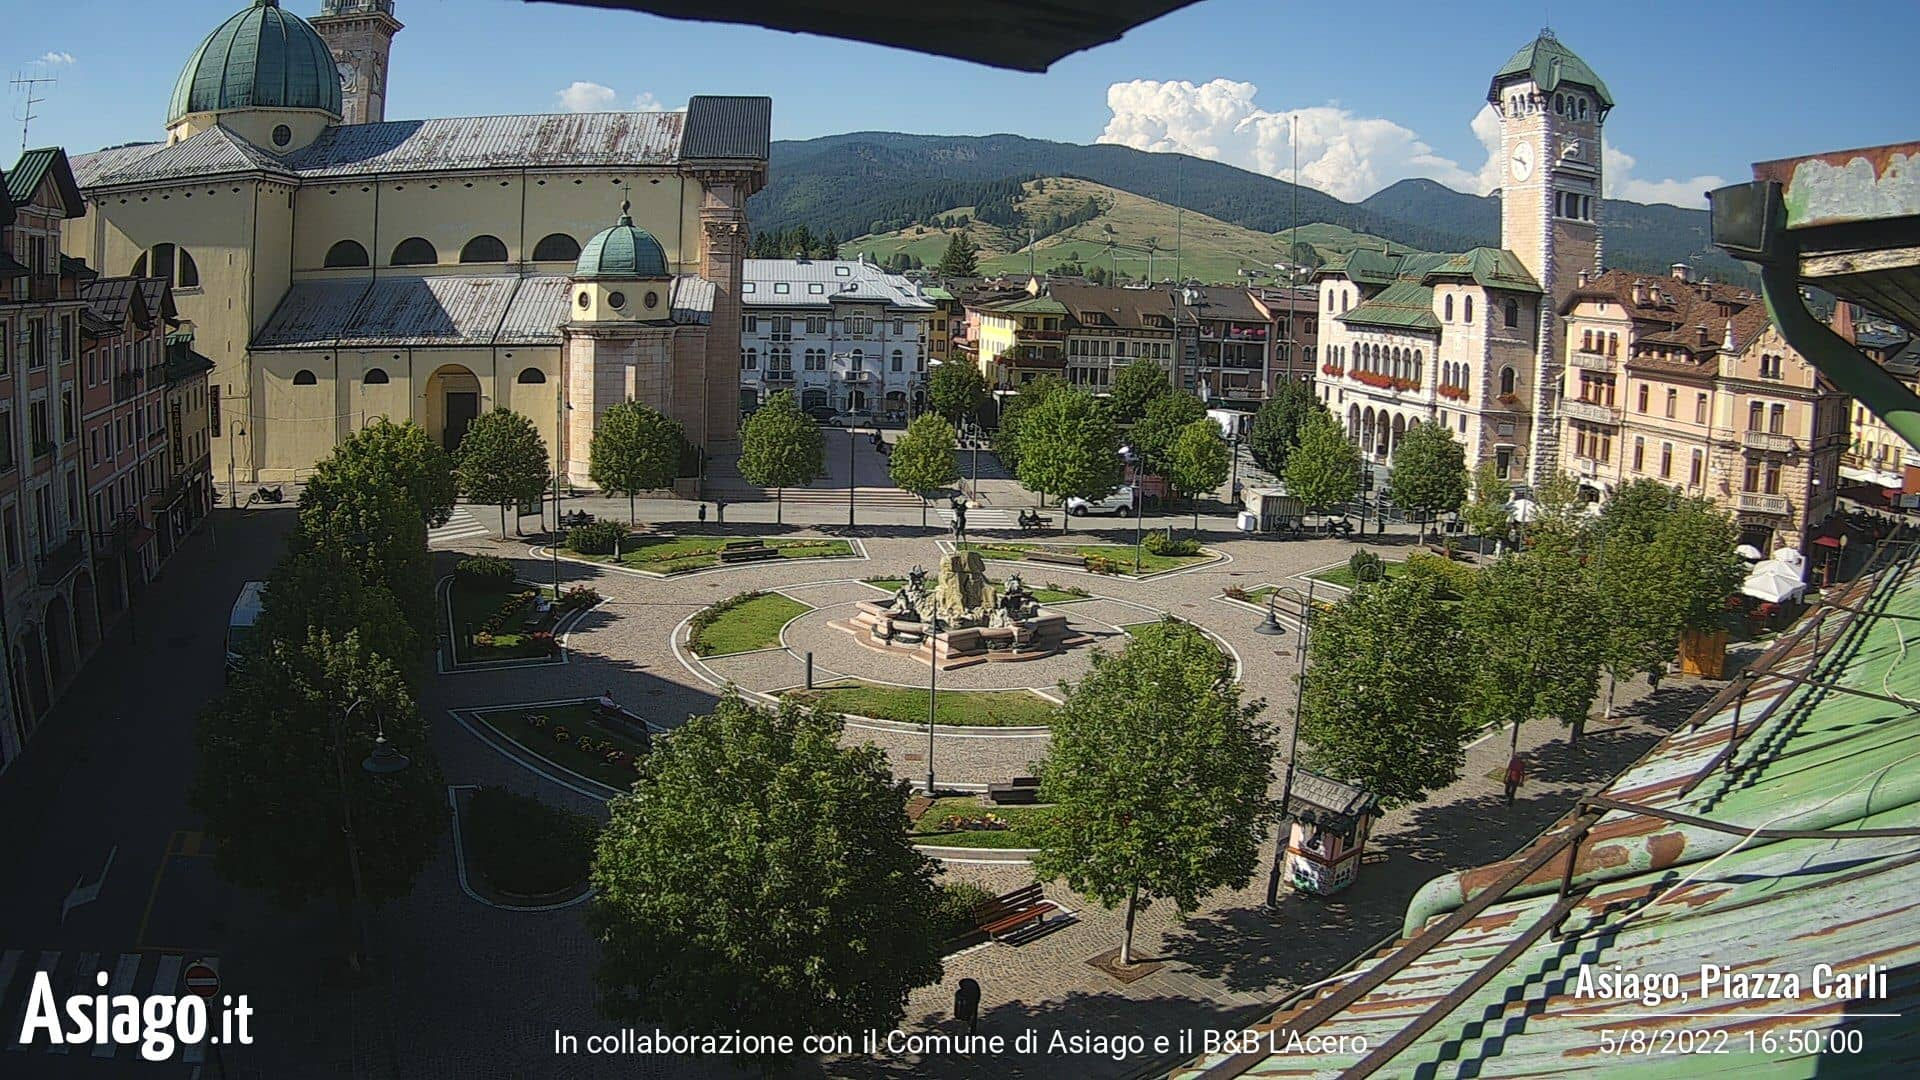 Live webcams on Piazza Carli ad Asiago